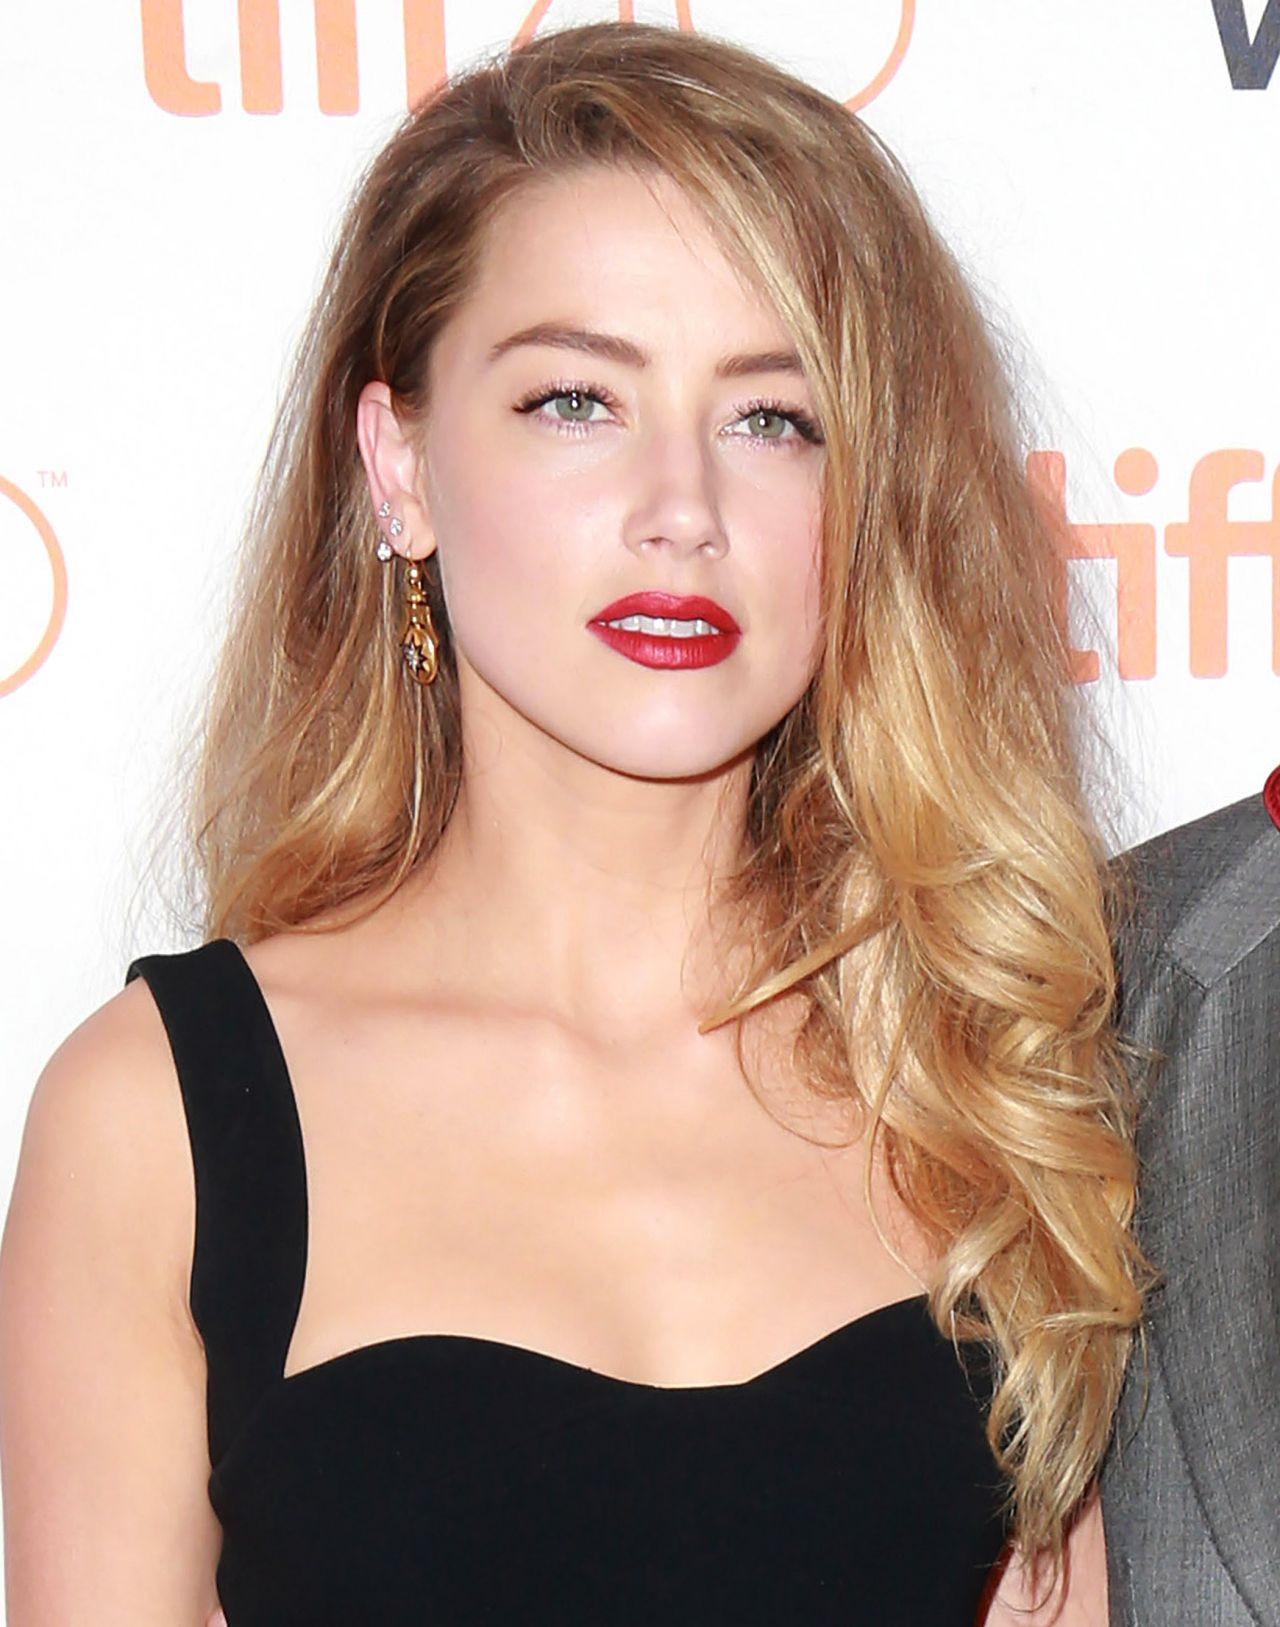 Image Result For Amber Heard